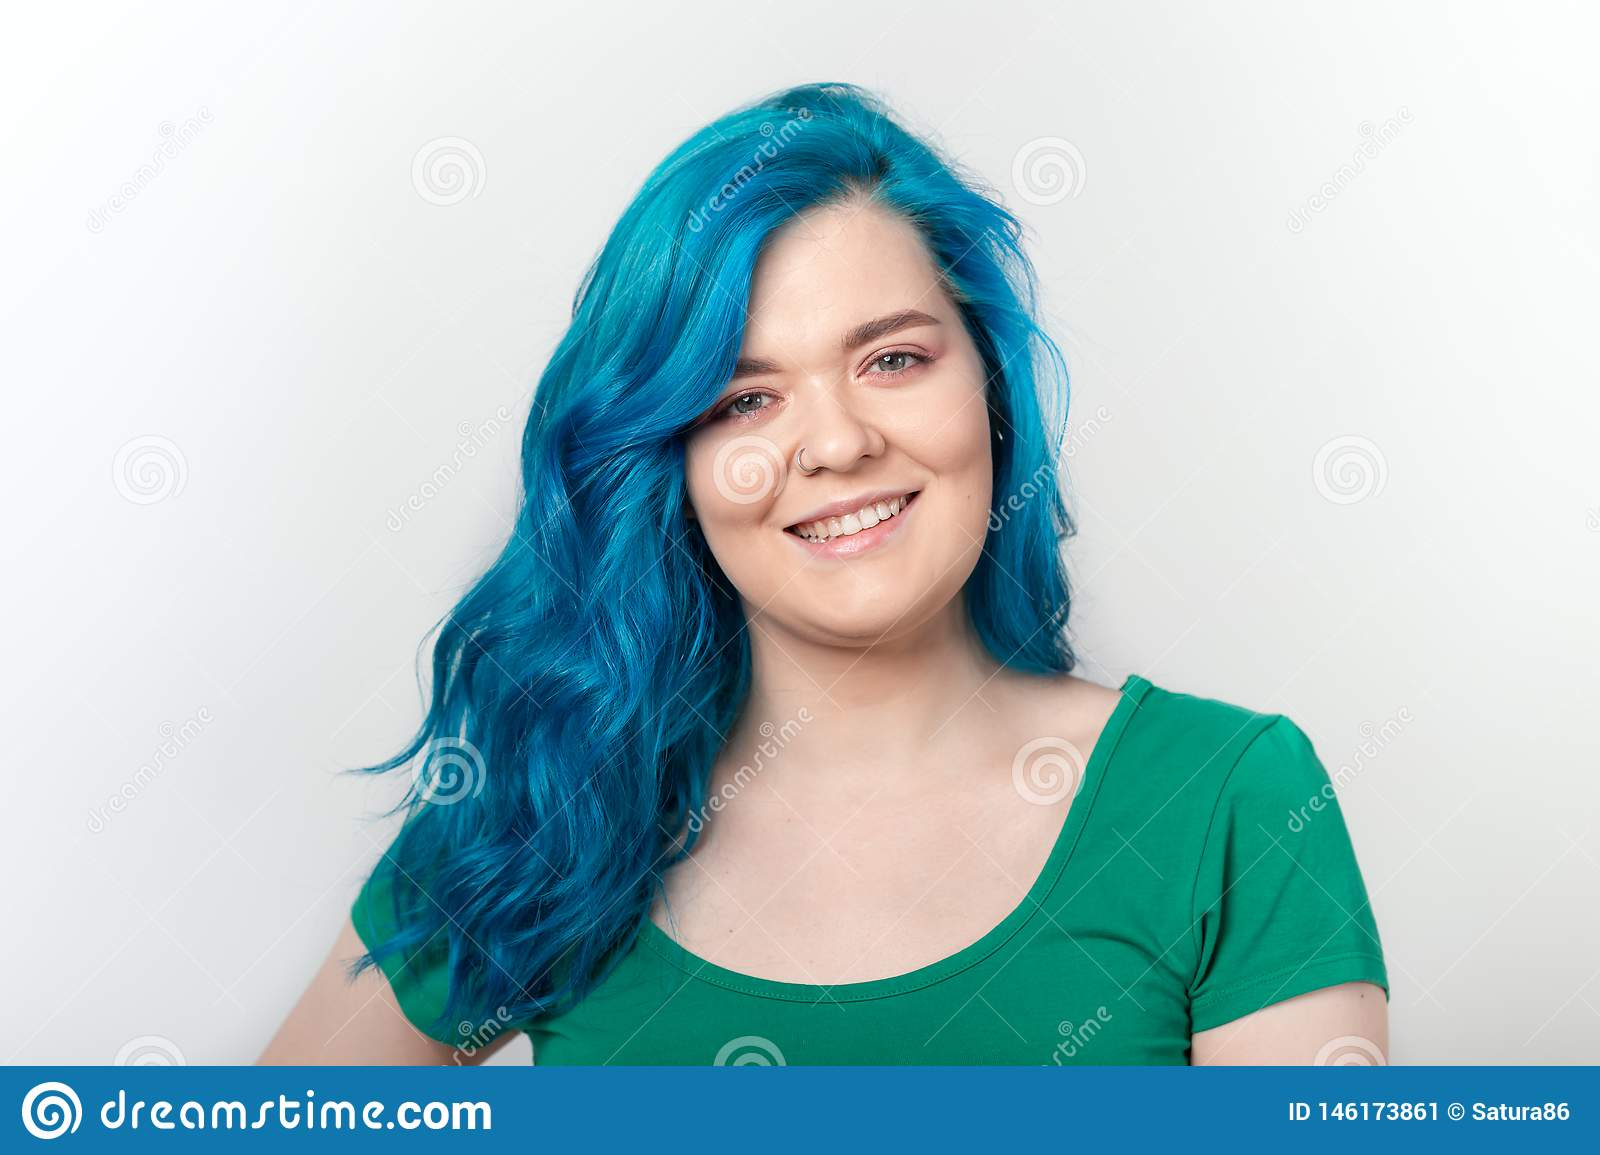 Youth, stylish and fashion concept - Young beautiful woman with blue hair is smiling over white background